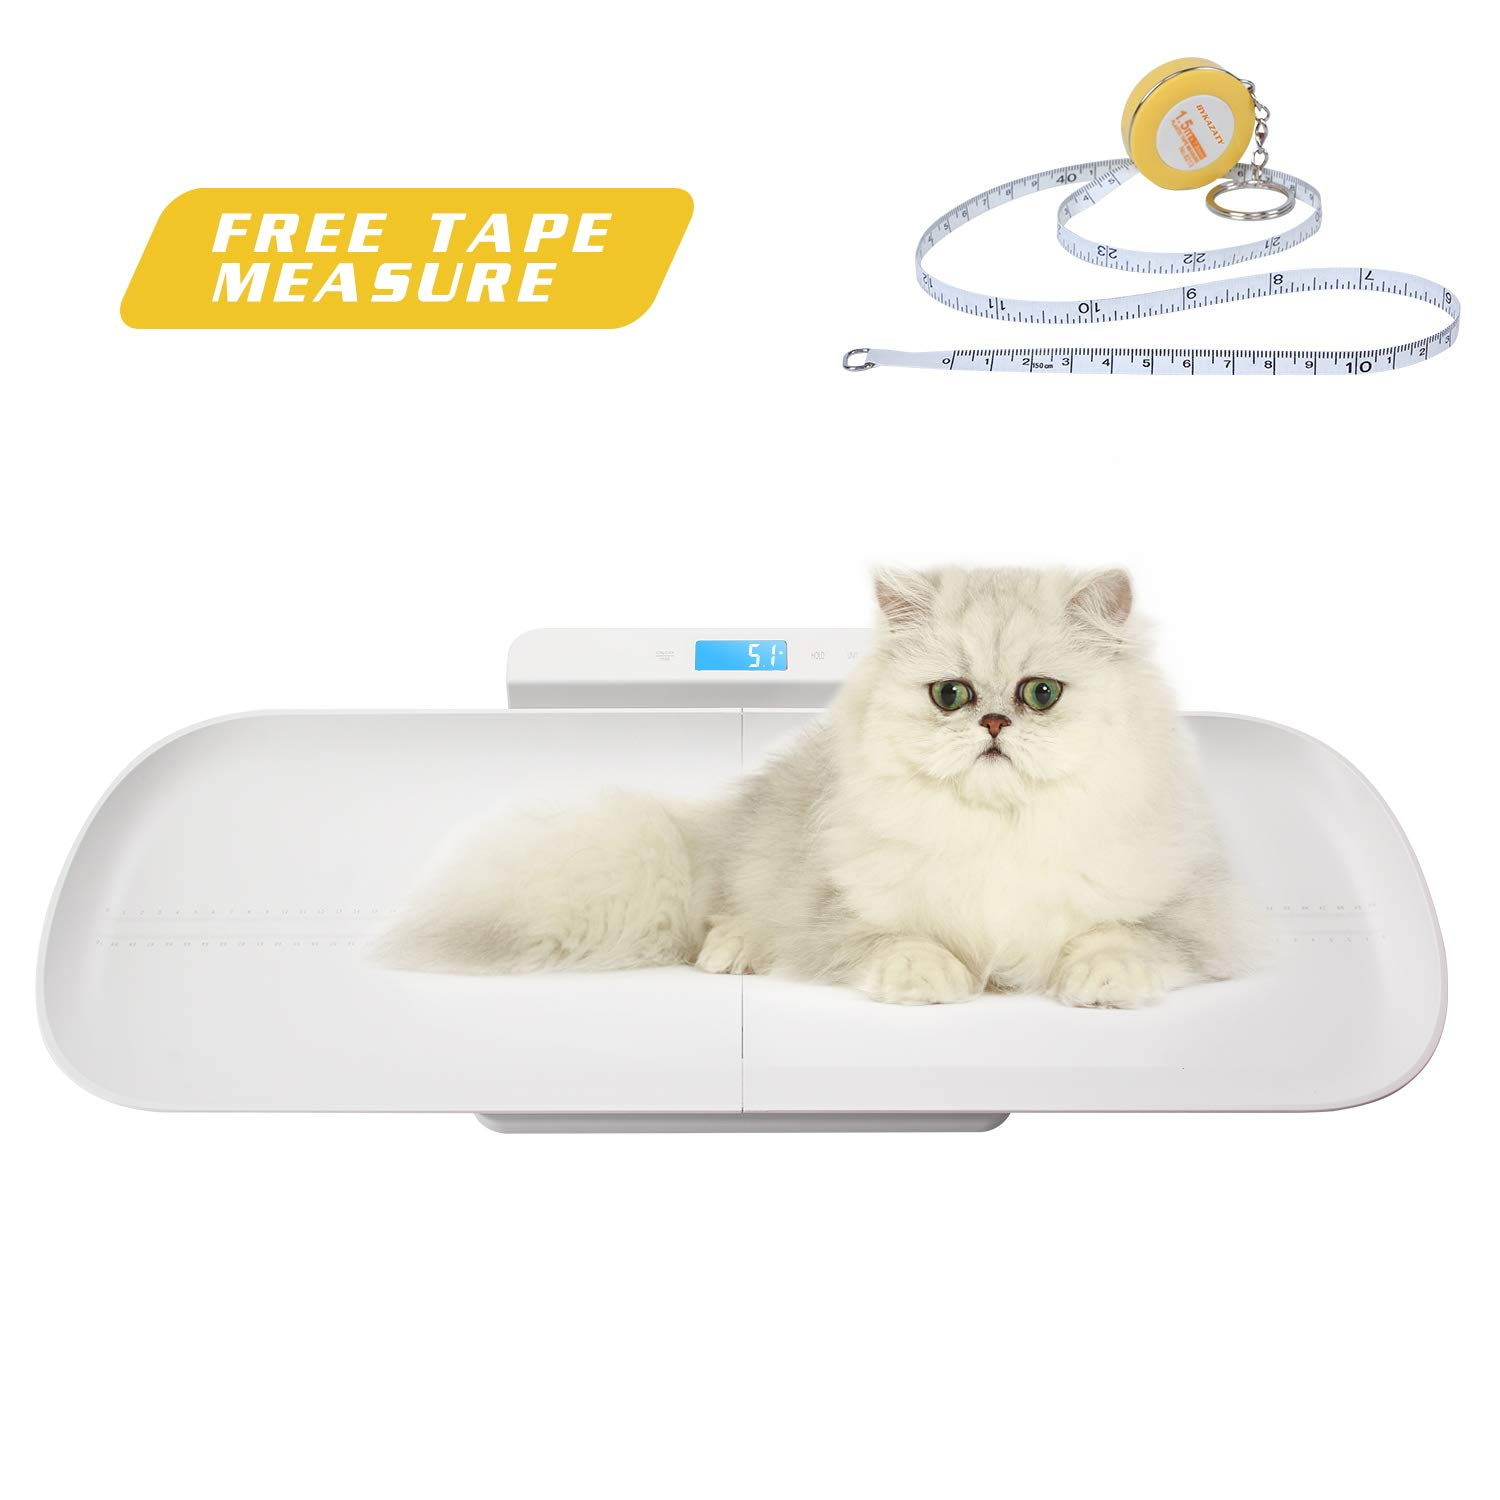 BYKAZATY Pet Scale with Tape Measure, Multi-Function Baby Scale, Infant Scale Digital Weight with Height Tray(Max: 70cm), Measure Weight Accurately(Max: 220lb), Perfect for Toddler/Puppy/Cat/Dog/Adult by BYKAZATY (Image #1)